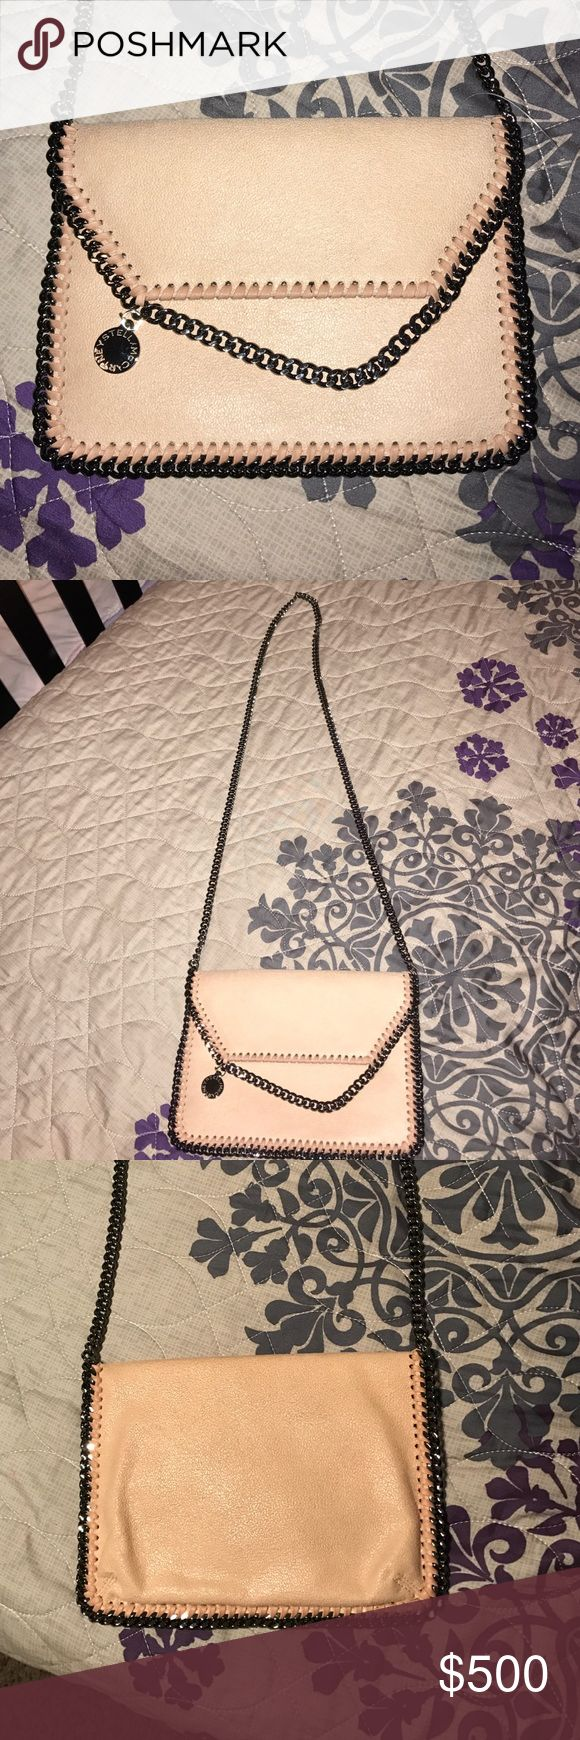 """New!! Stella Mcartney bag New without tags/ Mini Falabella """" shaggy deer"""" Faux leather crossbody bag / powdered pink color. No scratches no stains. Feel free to make an offer. Stella McCartney Bags Crossbody Bags"""